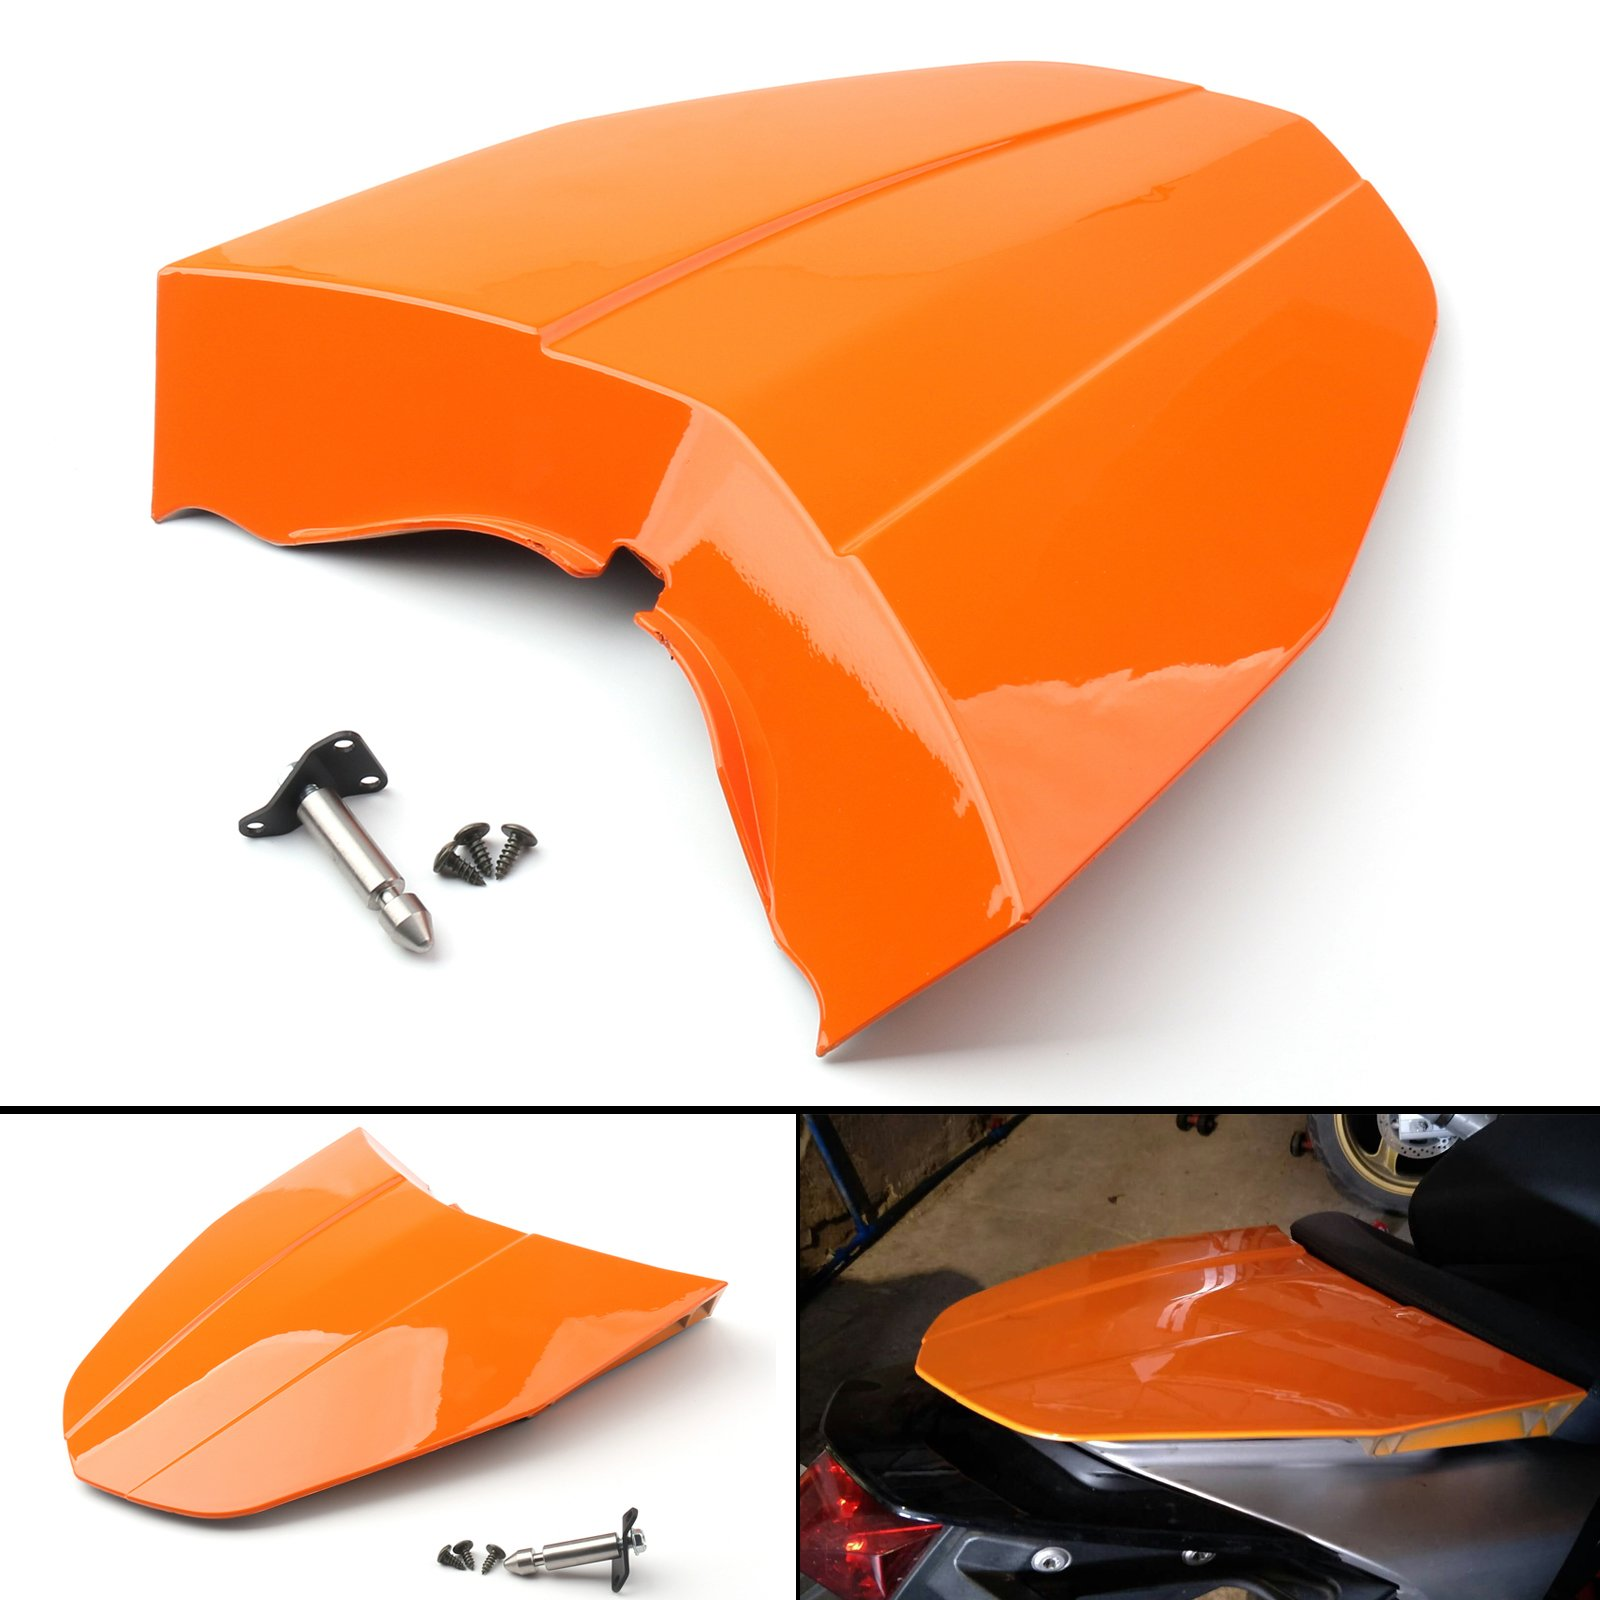 Areyourshop Orange ABS Rear Tail Solo Seat Cover Cowl Fairing For 2013-2015 KTM 690 DUKE